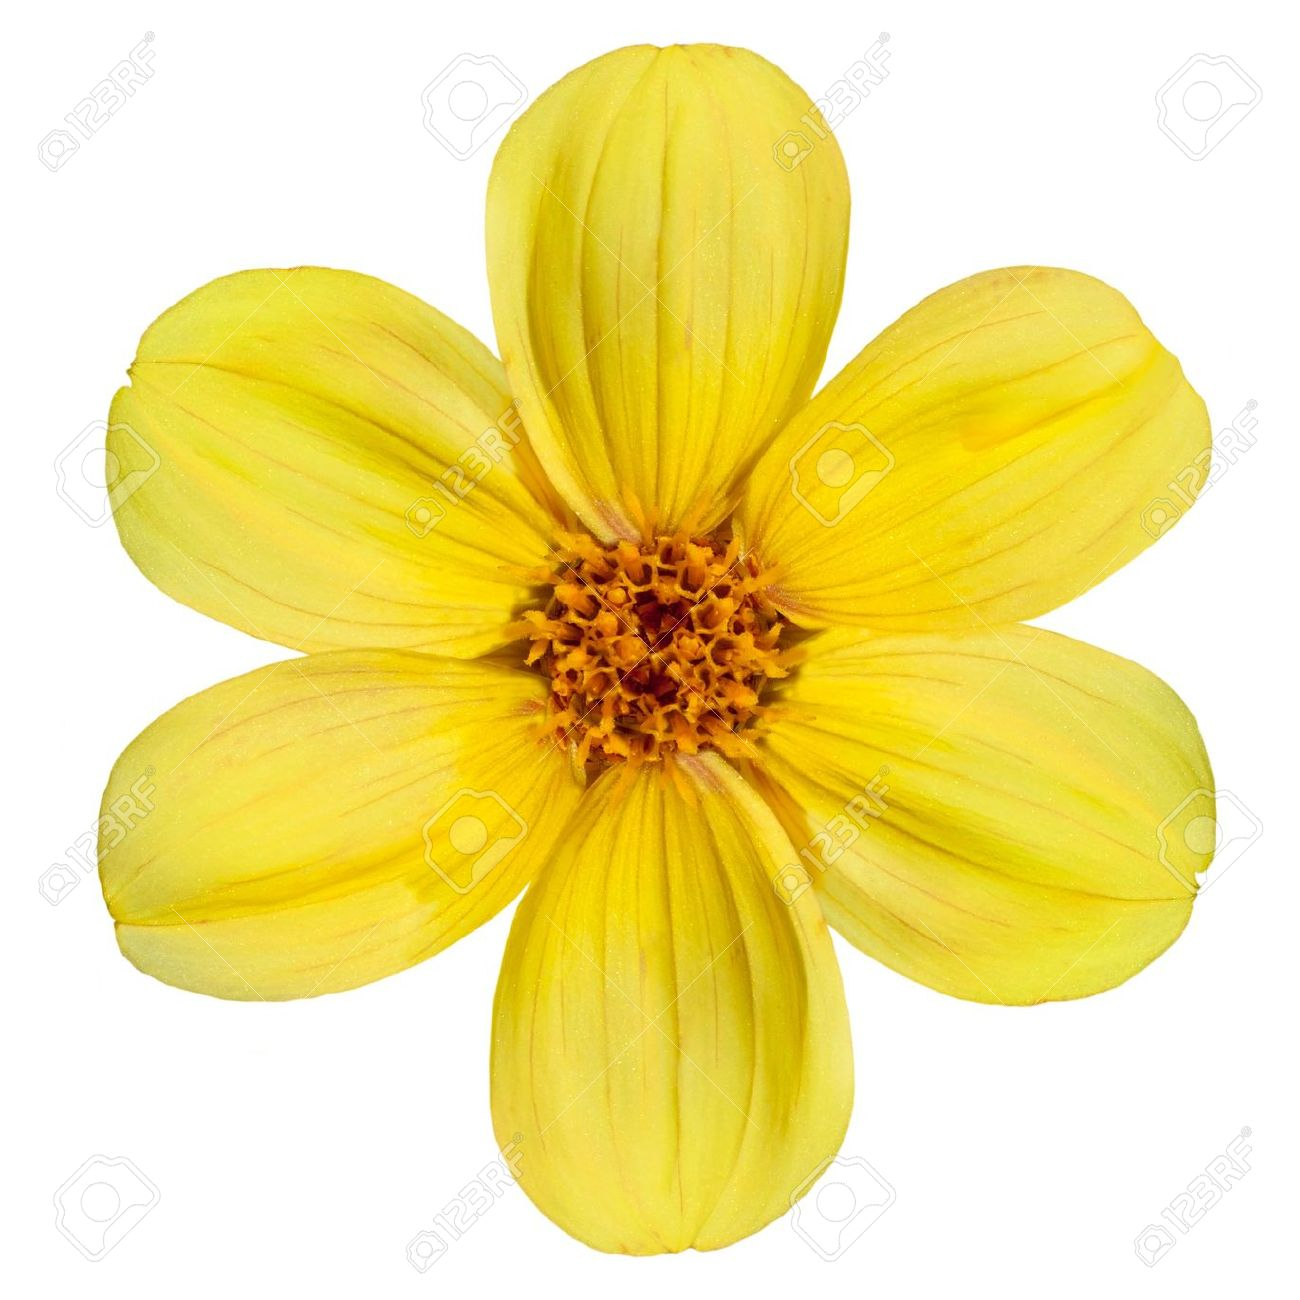 Single flower stock photos royalty free single flower images six fresh petals of beautiful yellow dahlia flower isolated on white background izmirmasajfo